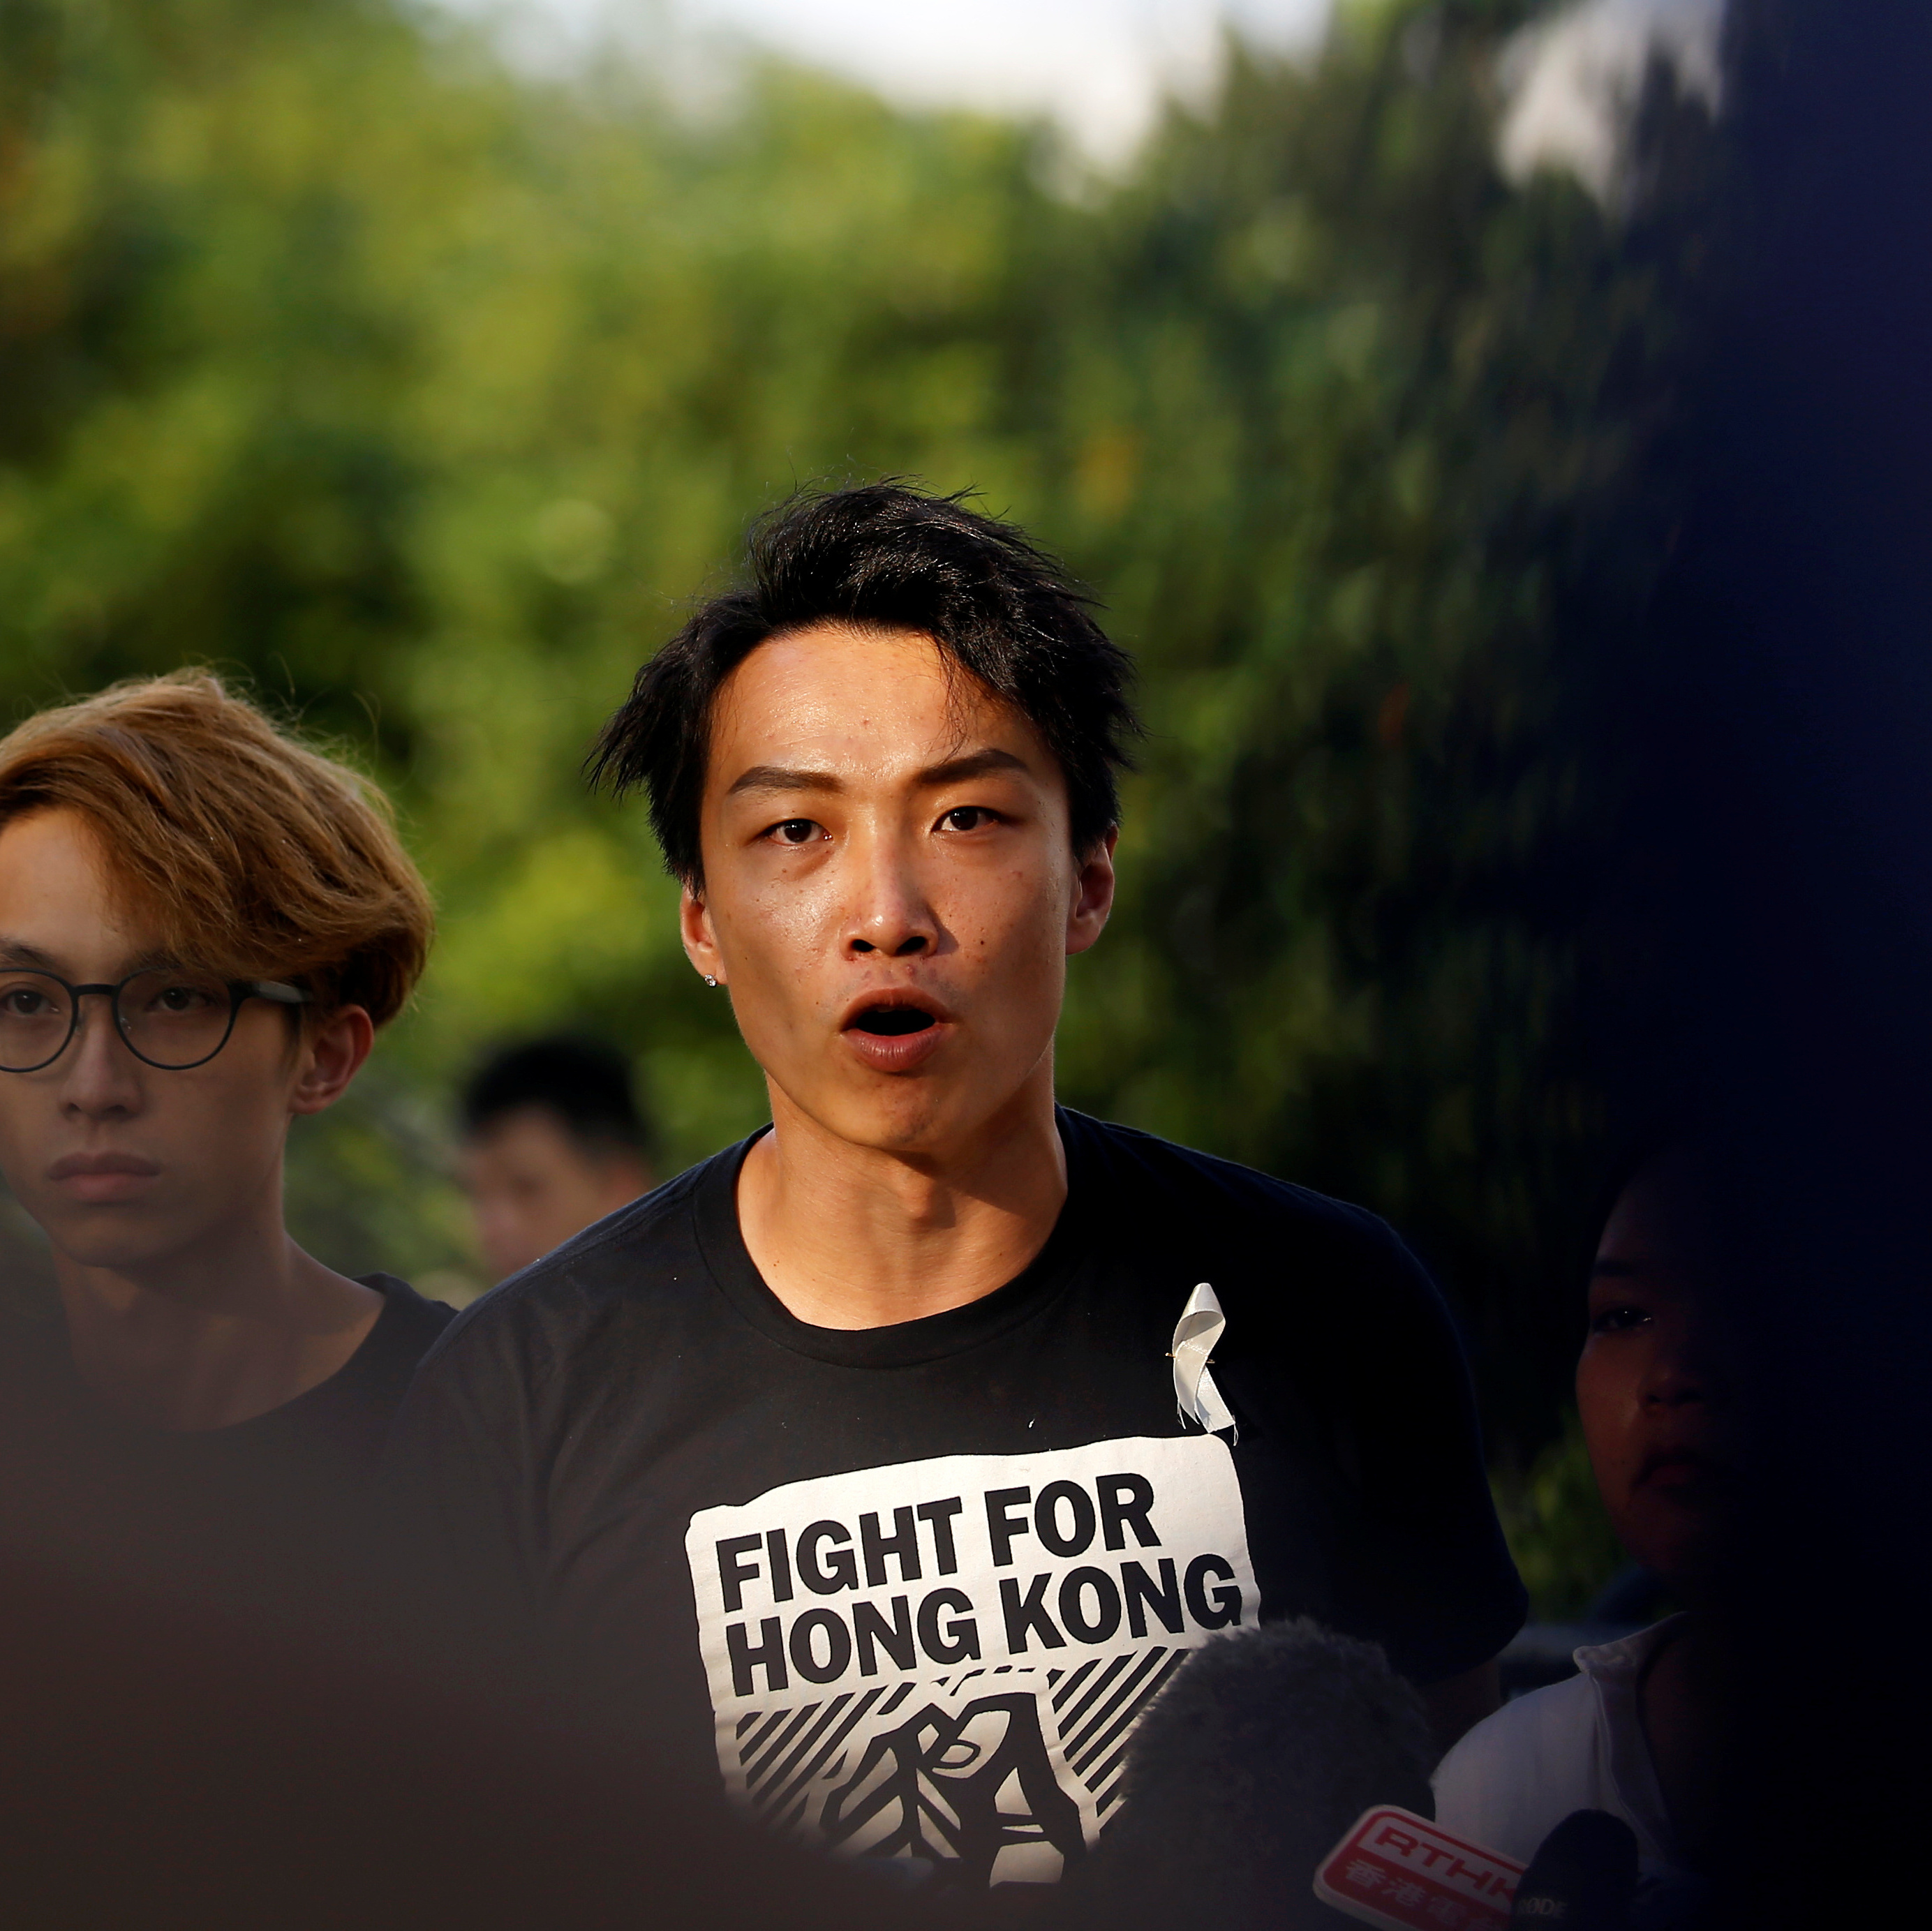 Prominent Hong Kong Protest Leader Beaten By Unknown Assailants